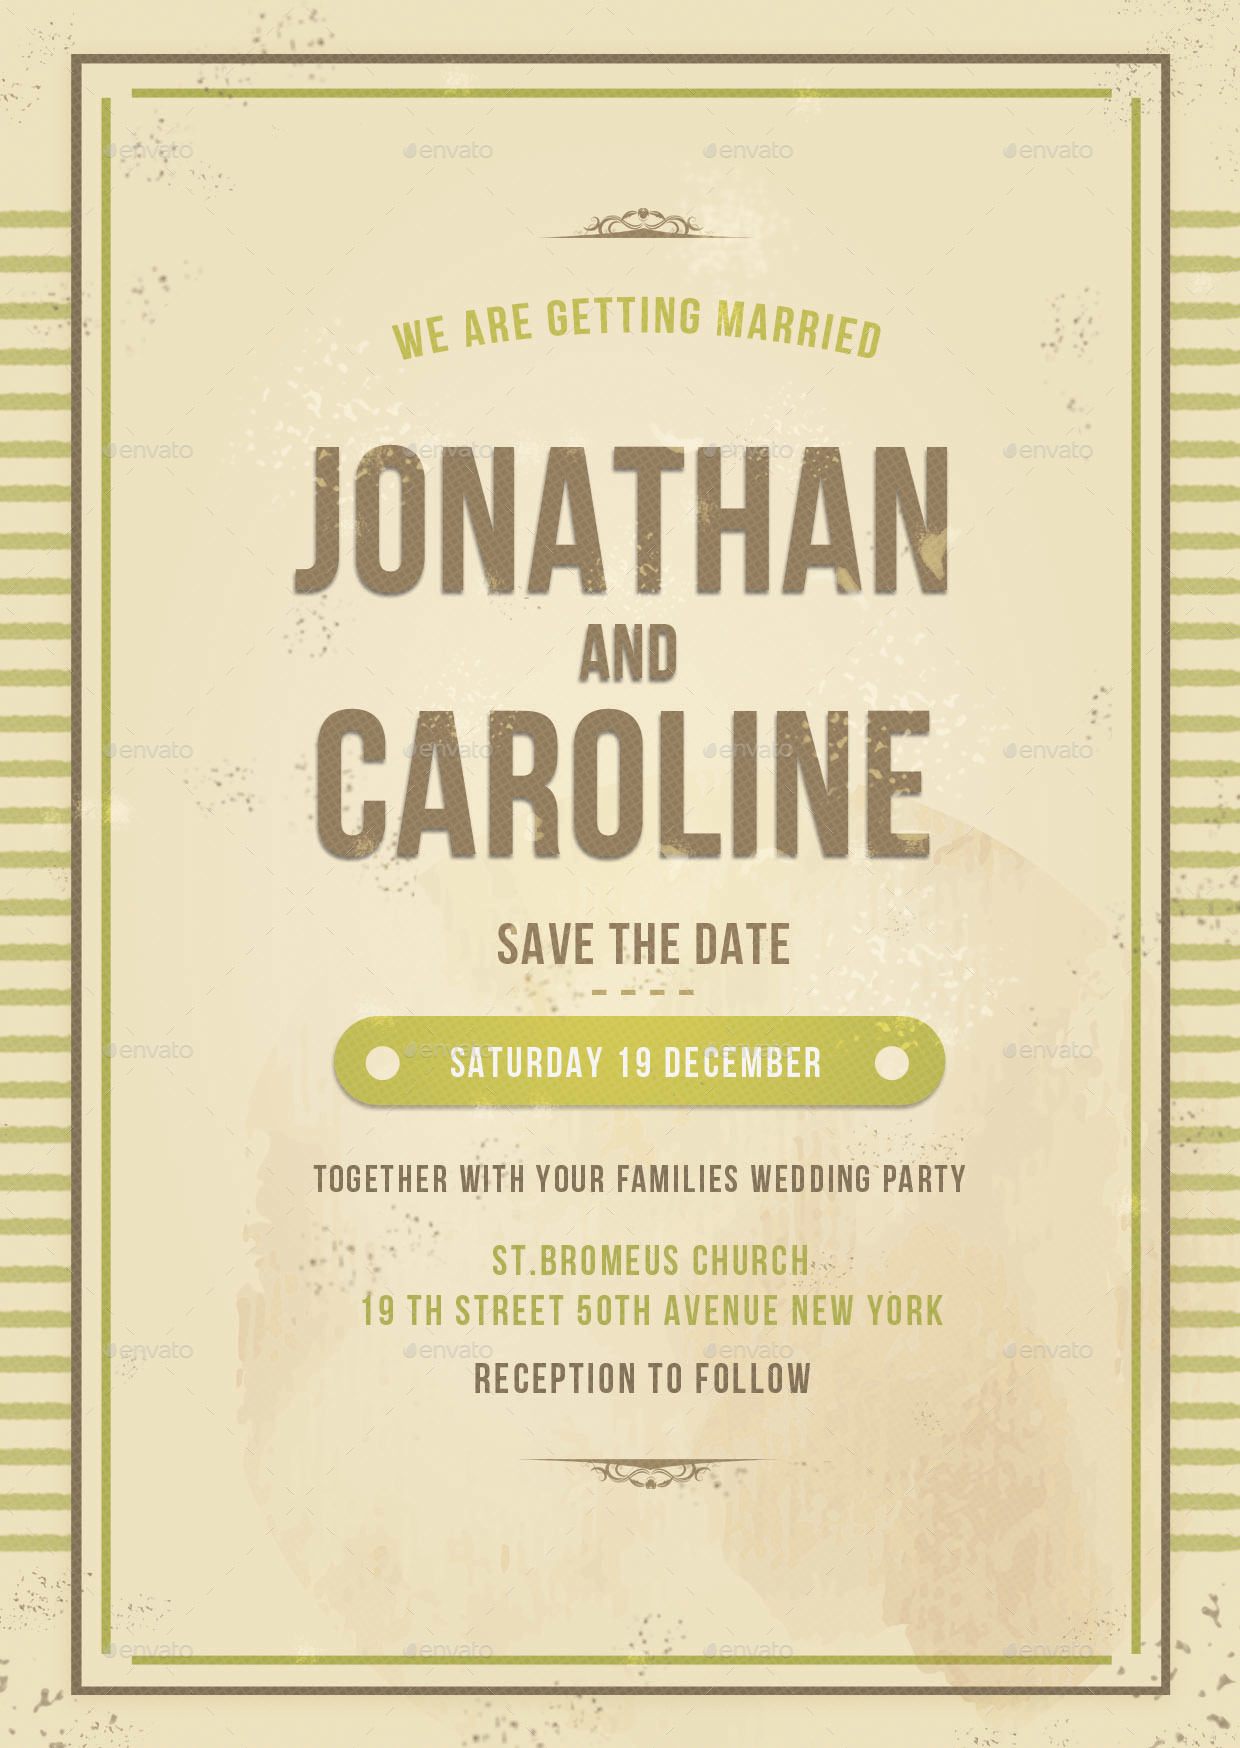 Vintage Wedding invitation by lilynthesweetpea | GraphicRiver